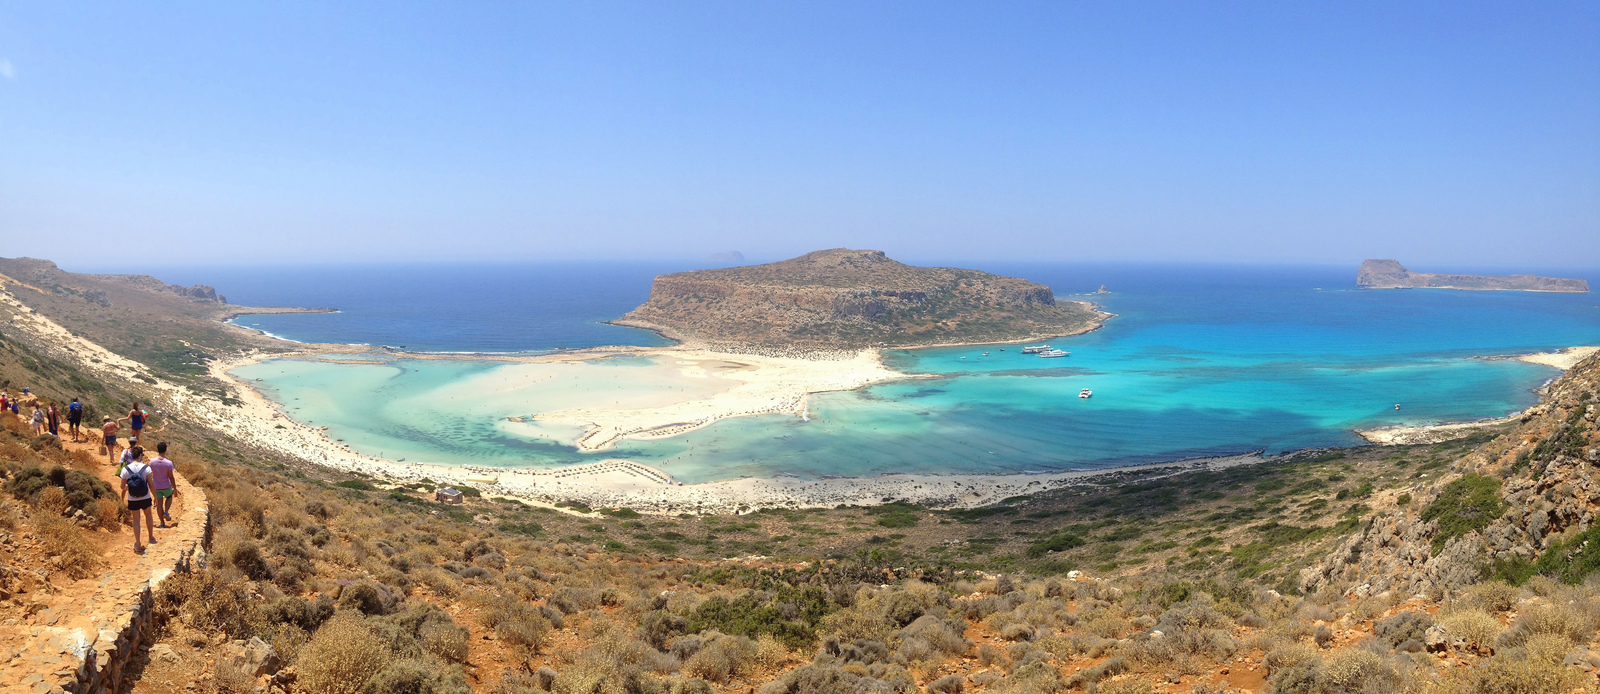 Balos Lagoon in Chania on the island of Crete.